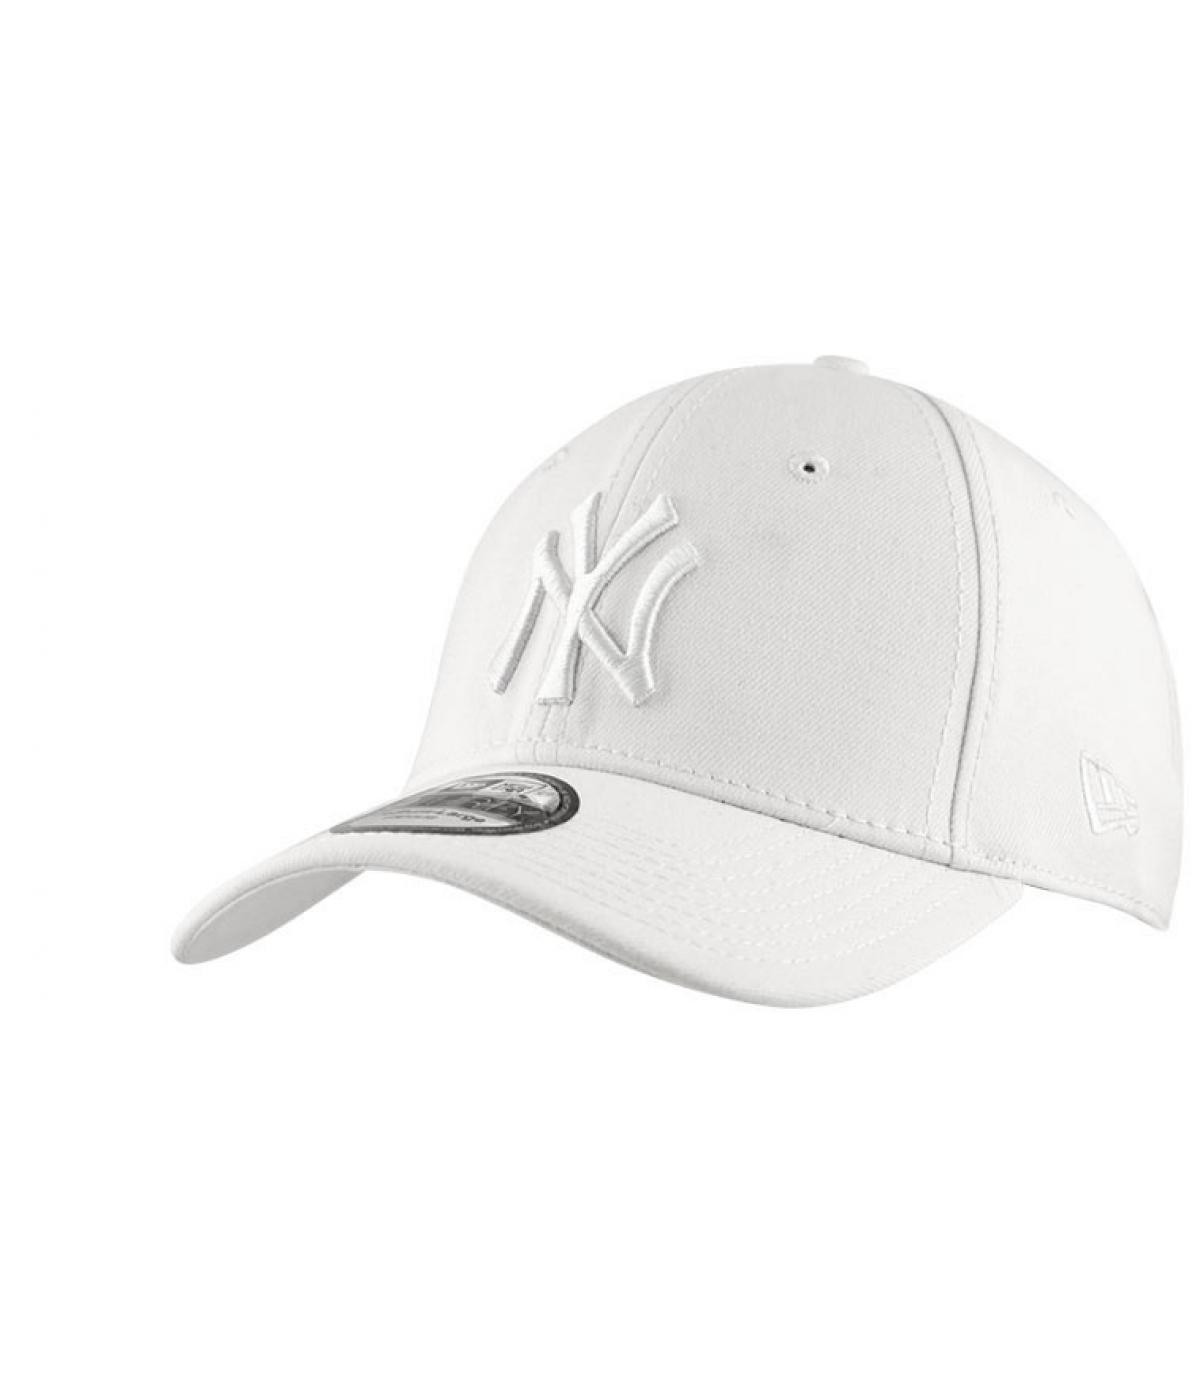 Détails Casquette ny 39Thirty blanche - image 6